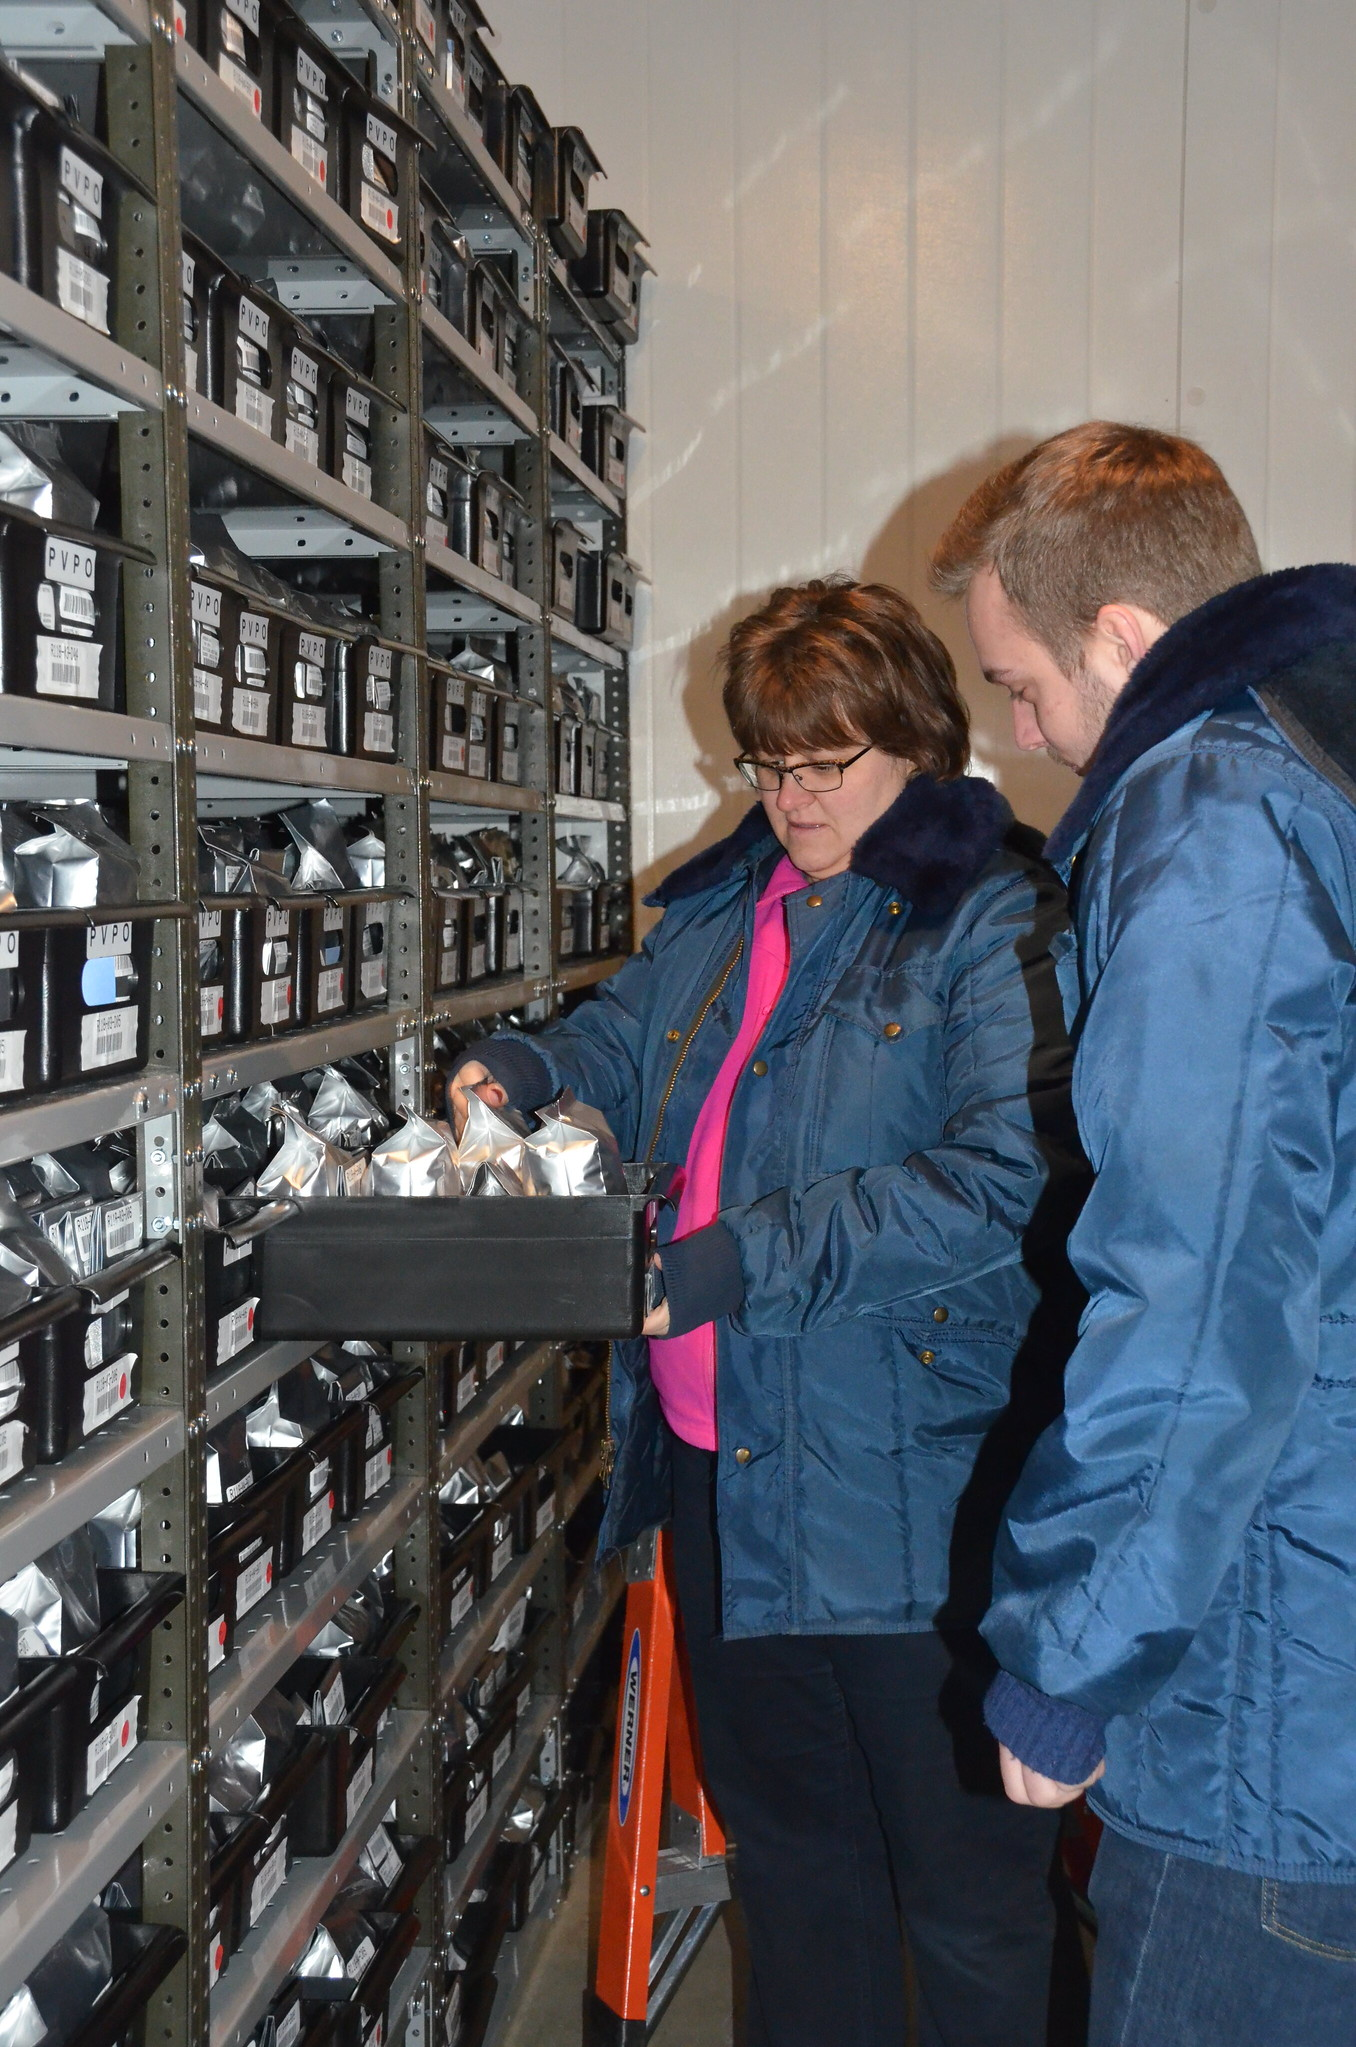 Image of Lisa Hill and Ryan Lynch checking samples at -20C in seed vault at NLGRP.